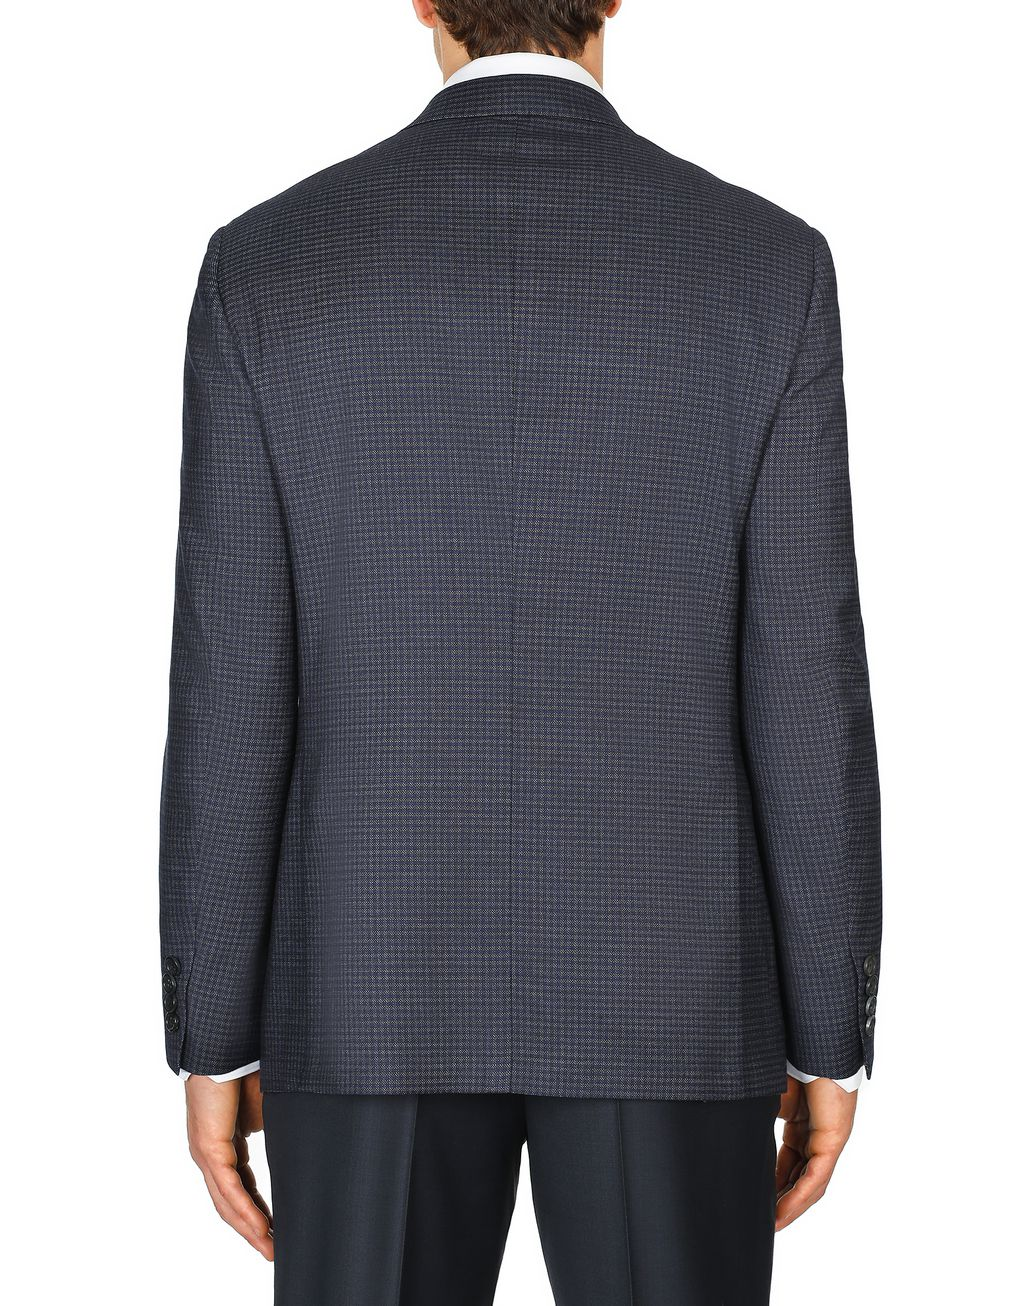 BRIONI Blue and Gray Micro-Check Ventiquattro Ravello Jacket Suits & Jackets Man d